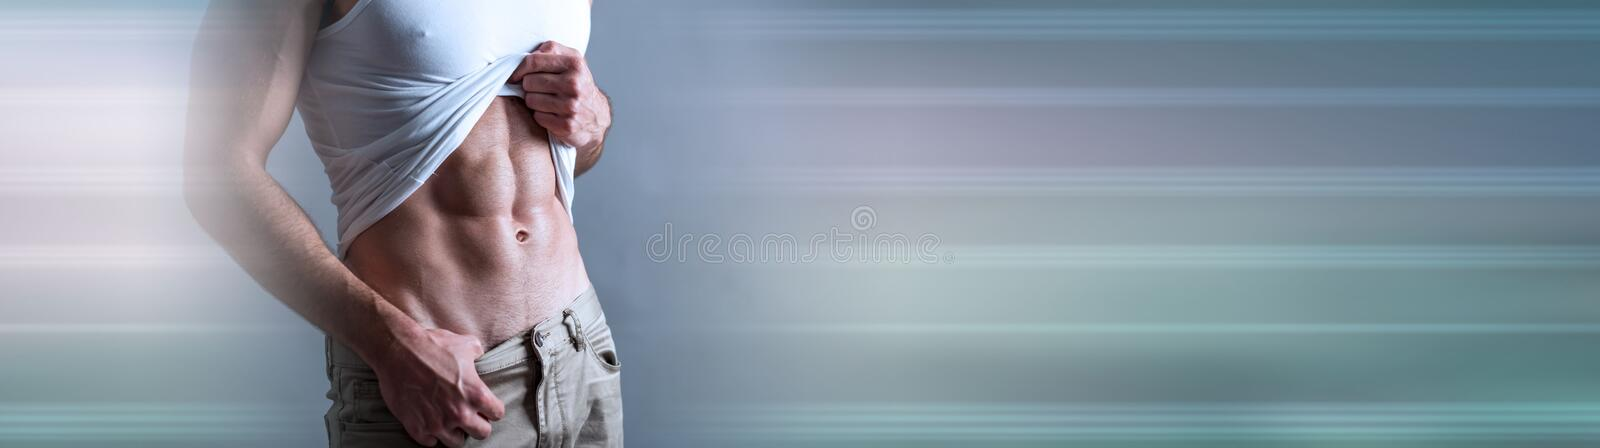 Abs of athletic man; panoramic banner stock photo